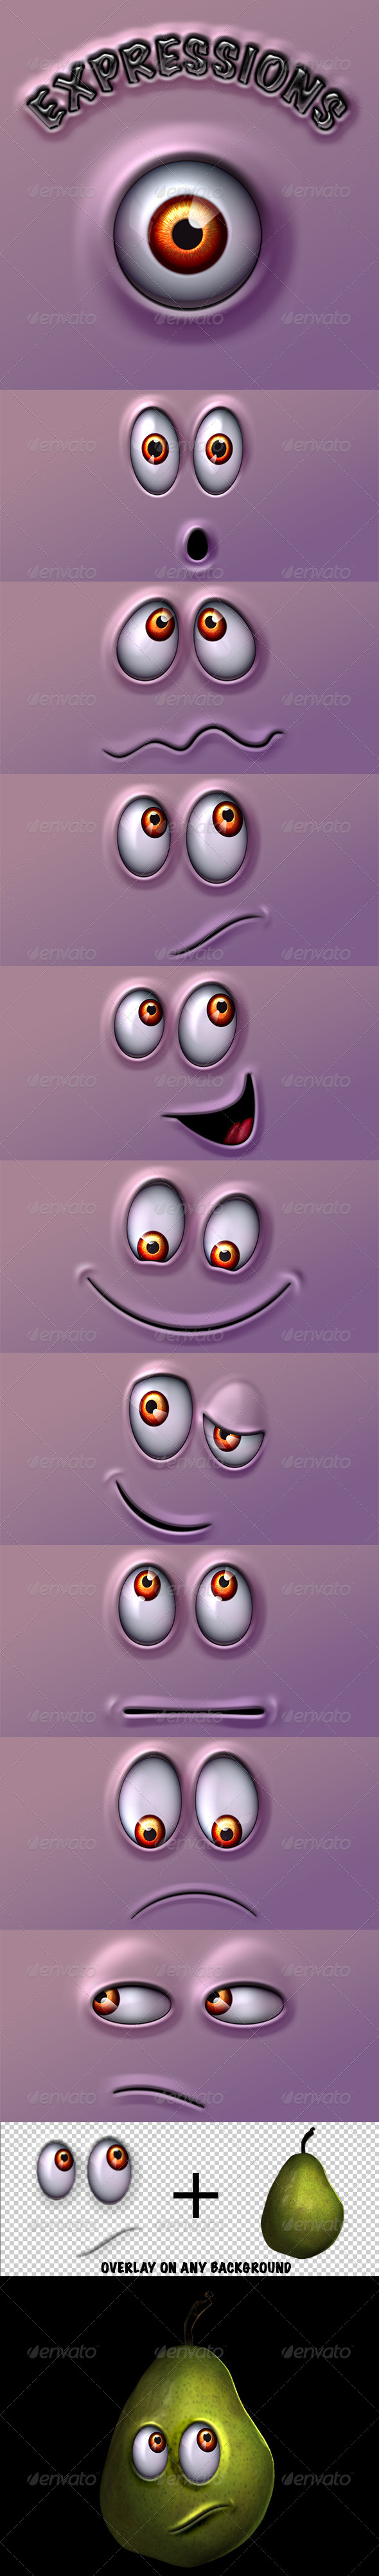 Character Expressions Pack